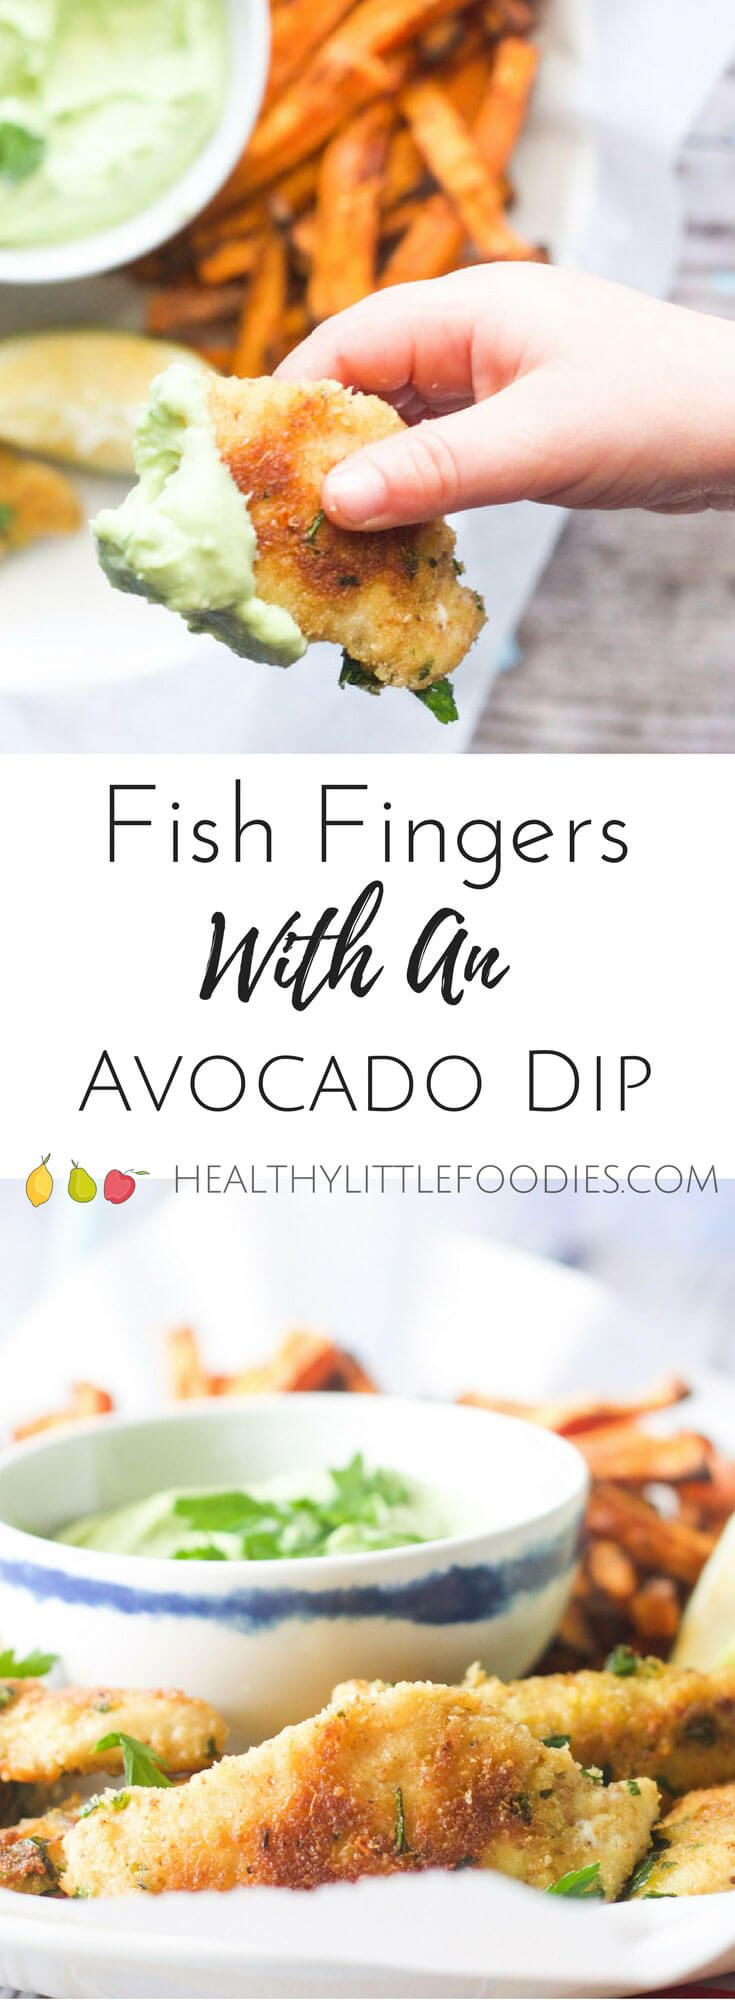 Best 25 avocado dip ideas on pinterest healthy dip for Kid friendly fish recipes